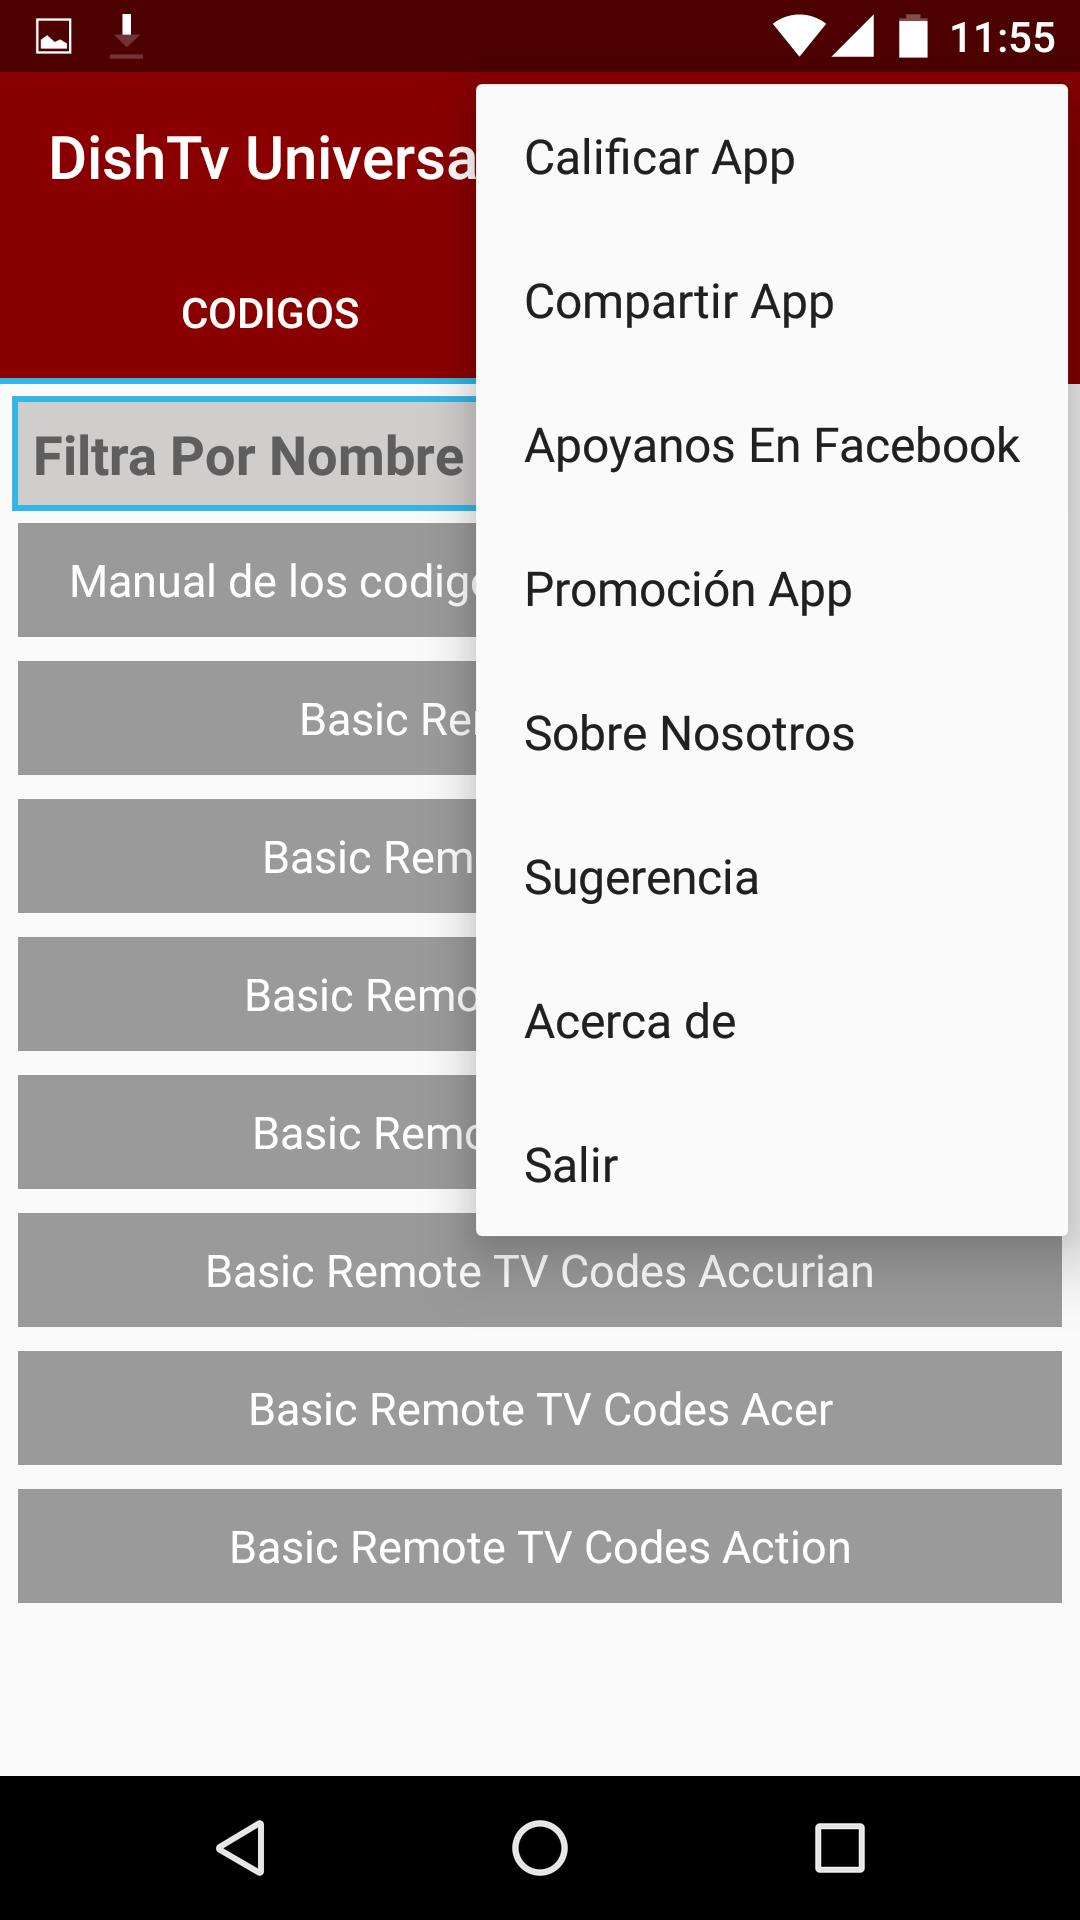 Code Control For Dish Tv for Android - APK Download